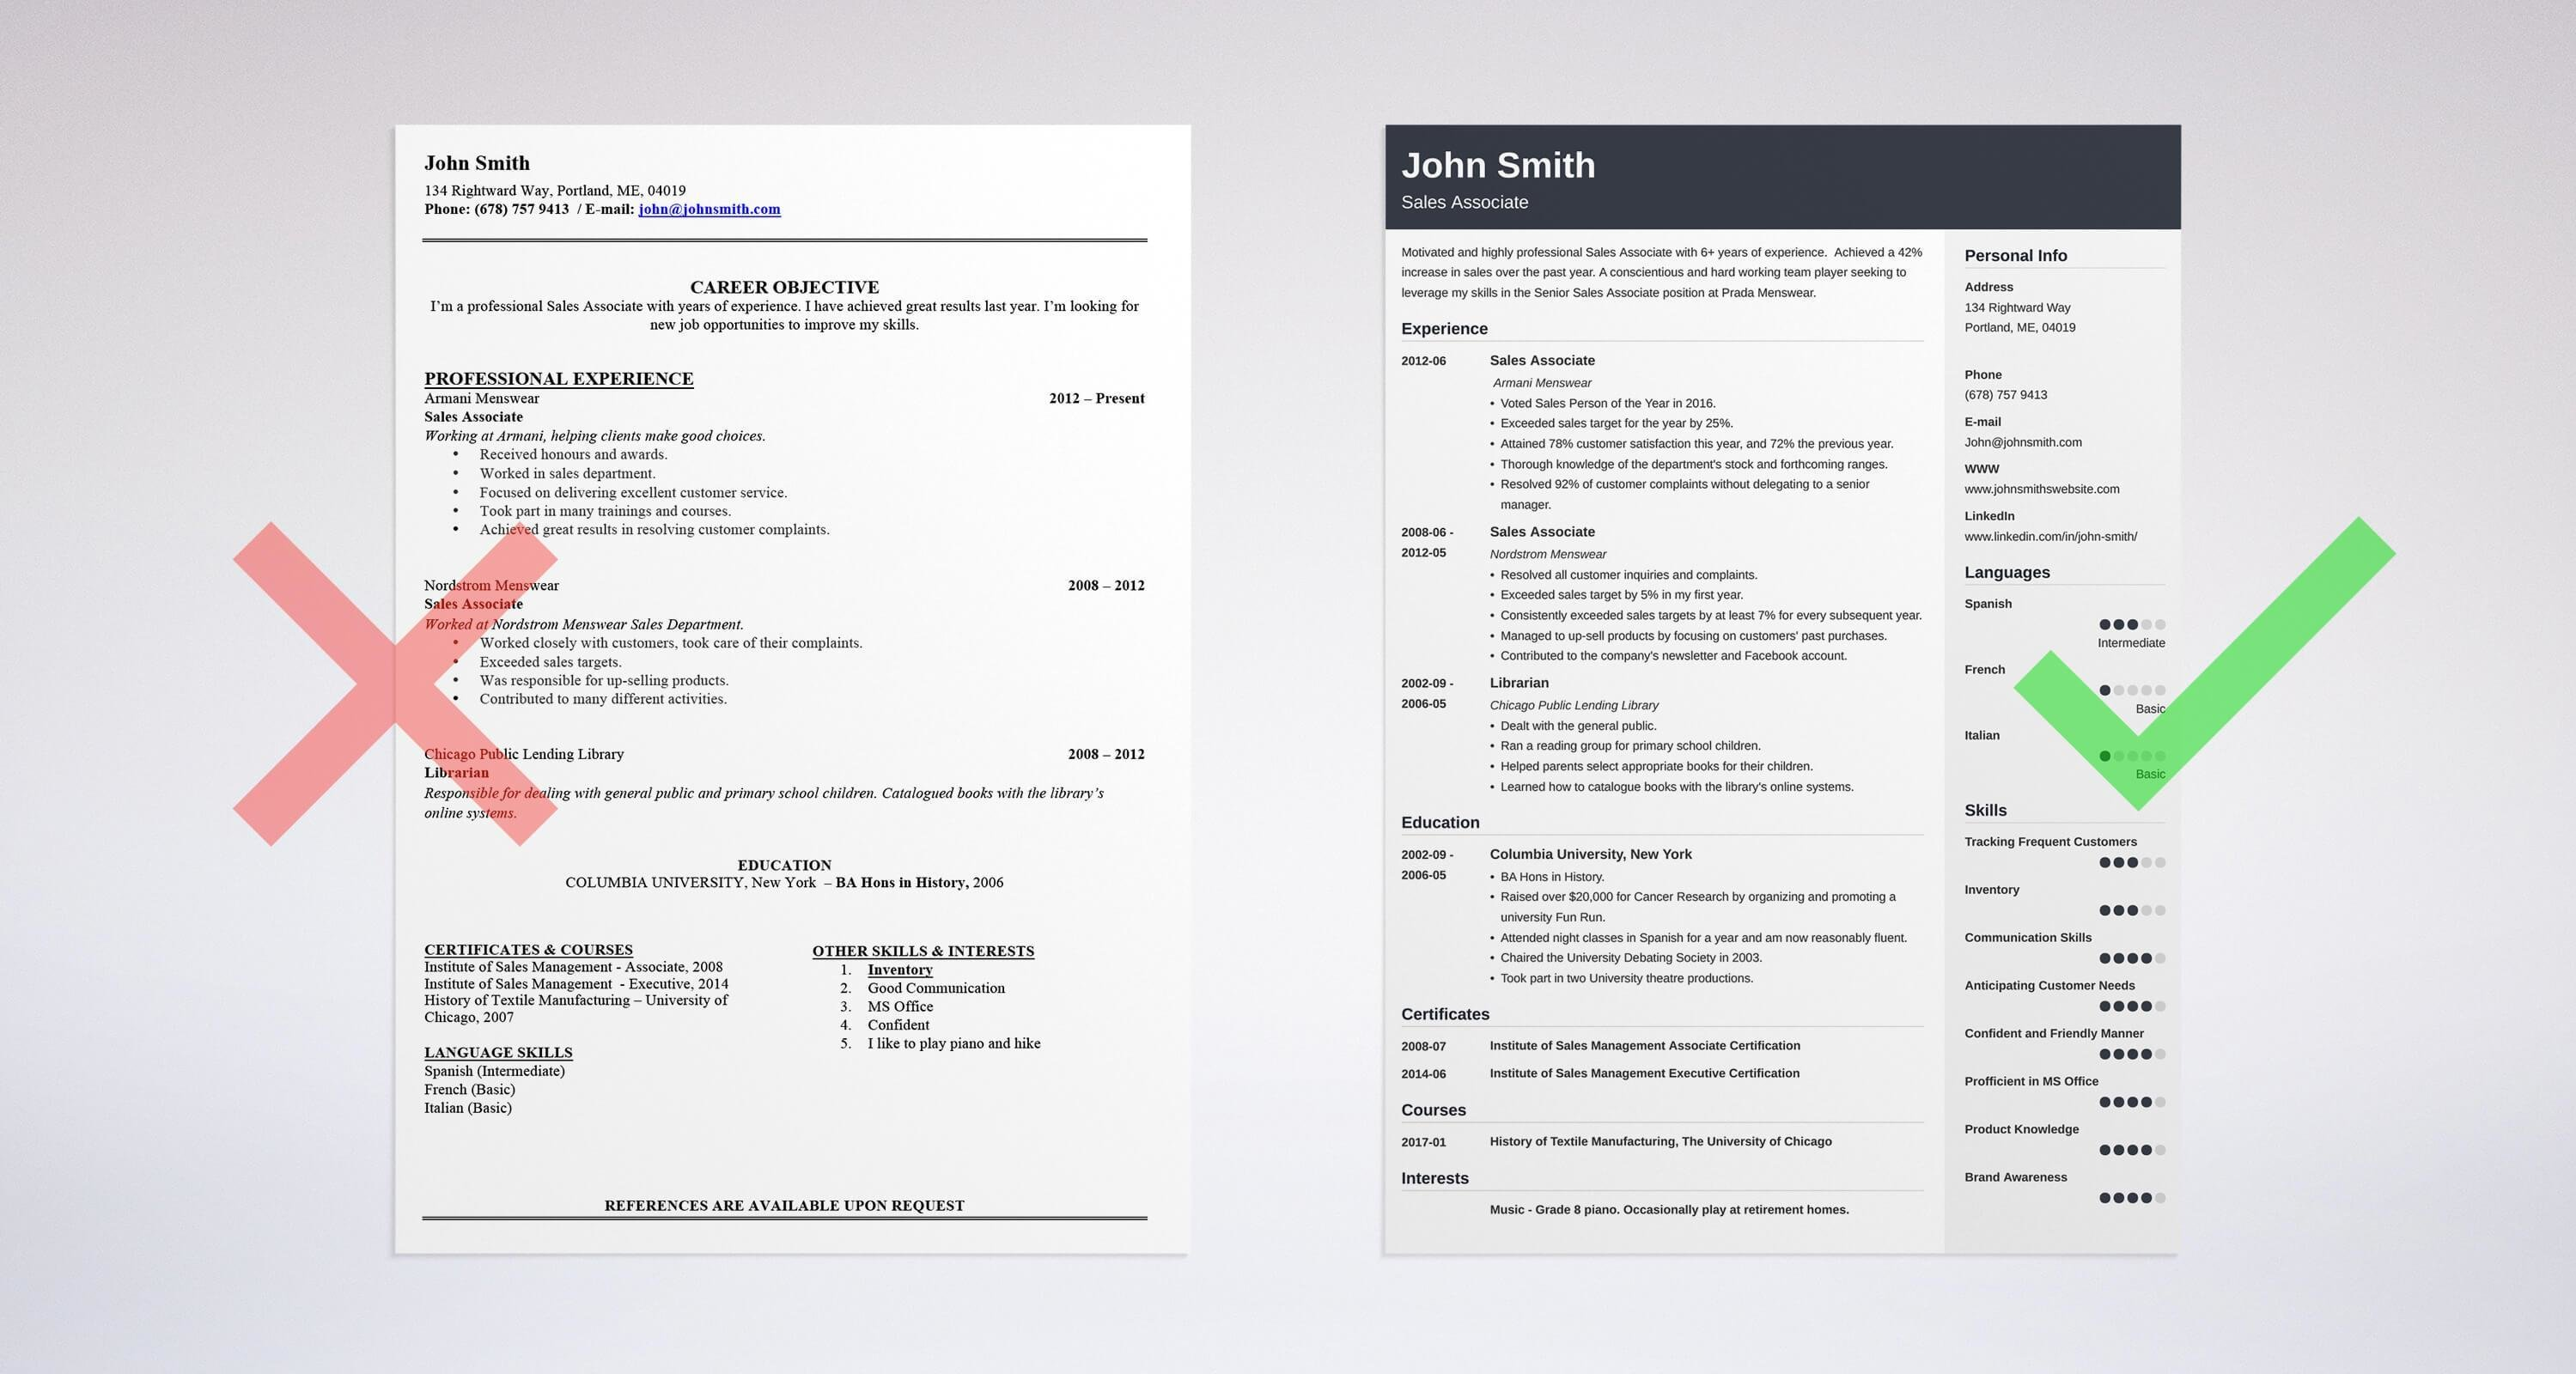 Professional Resume With A Career Summary  How To Have A Great Resume